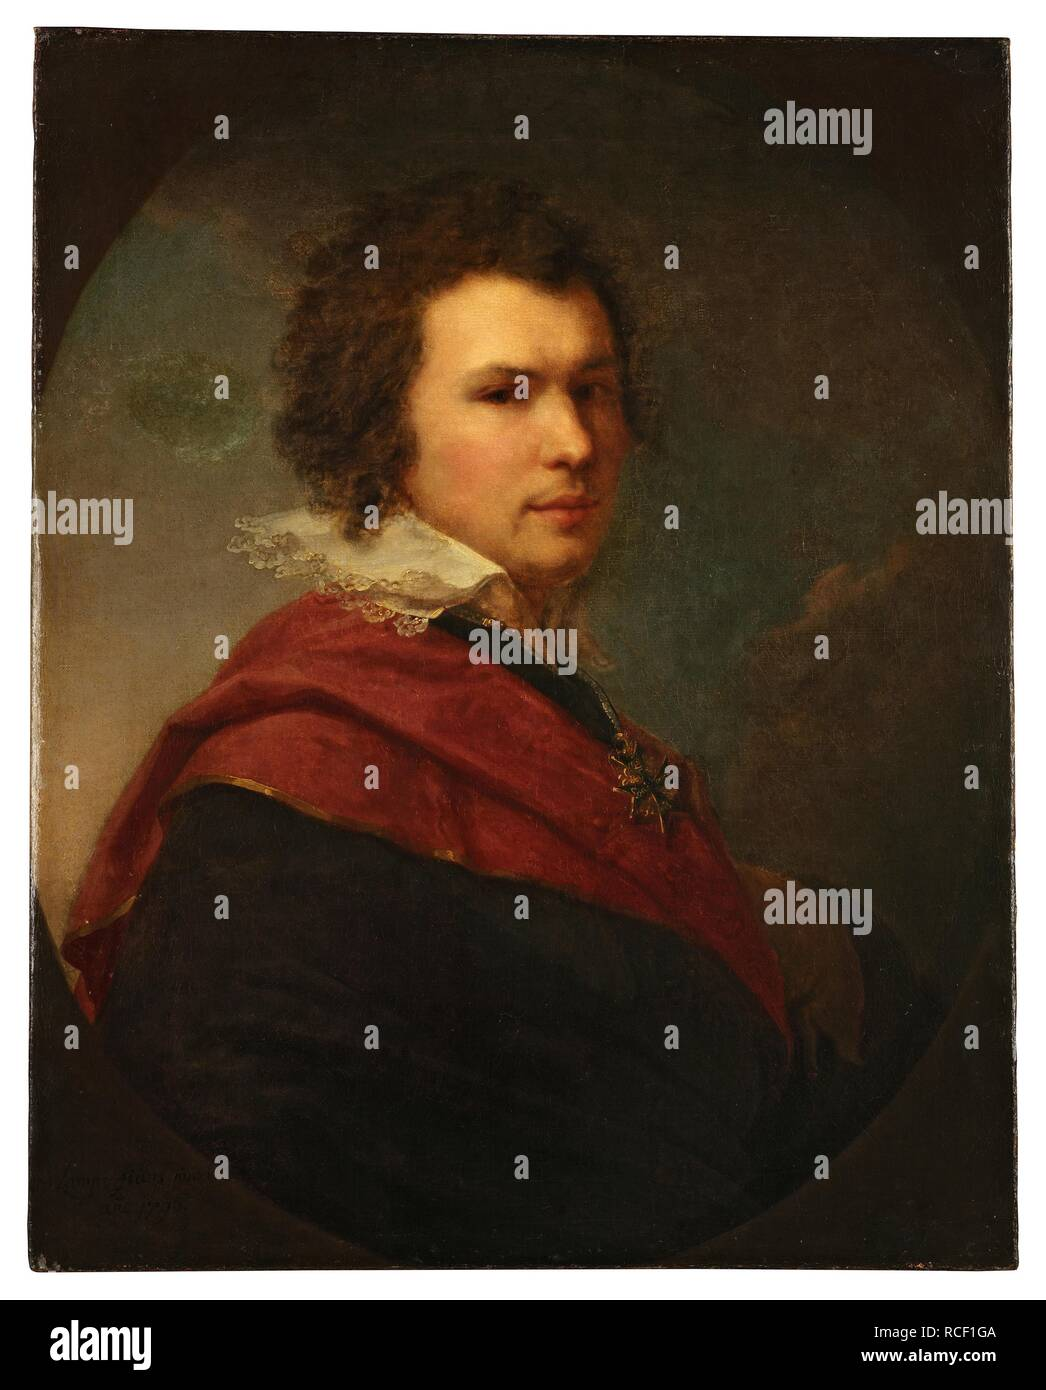 Portrait of the poet Apollon Alexandrovich Maykov (1761-1838). Museum: State Tretyakov Gallery, Moscow. Author: Lampi, Johann-Baptist, the Younger. - Stock Image